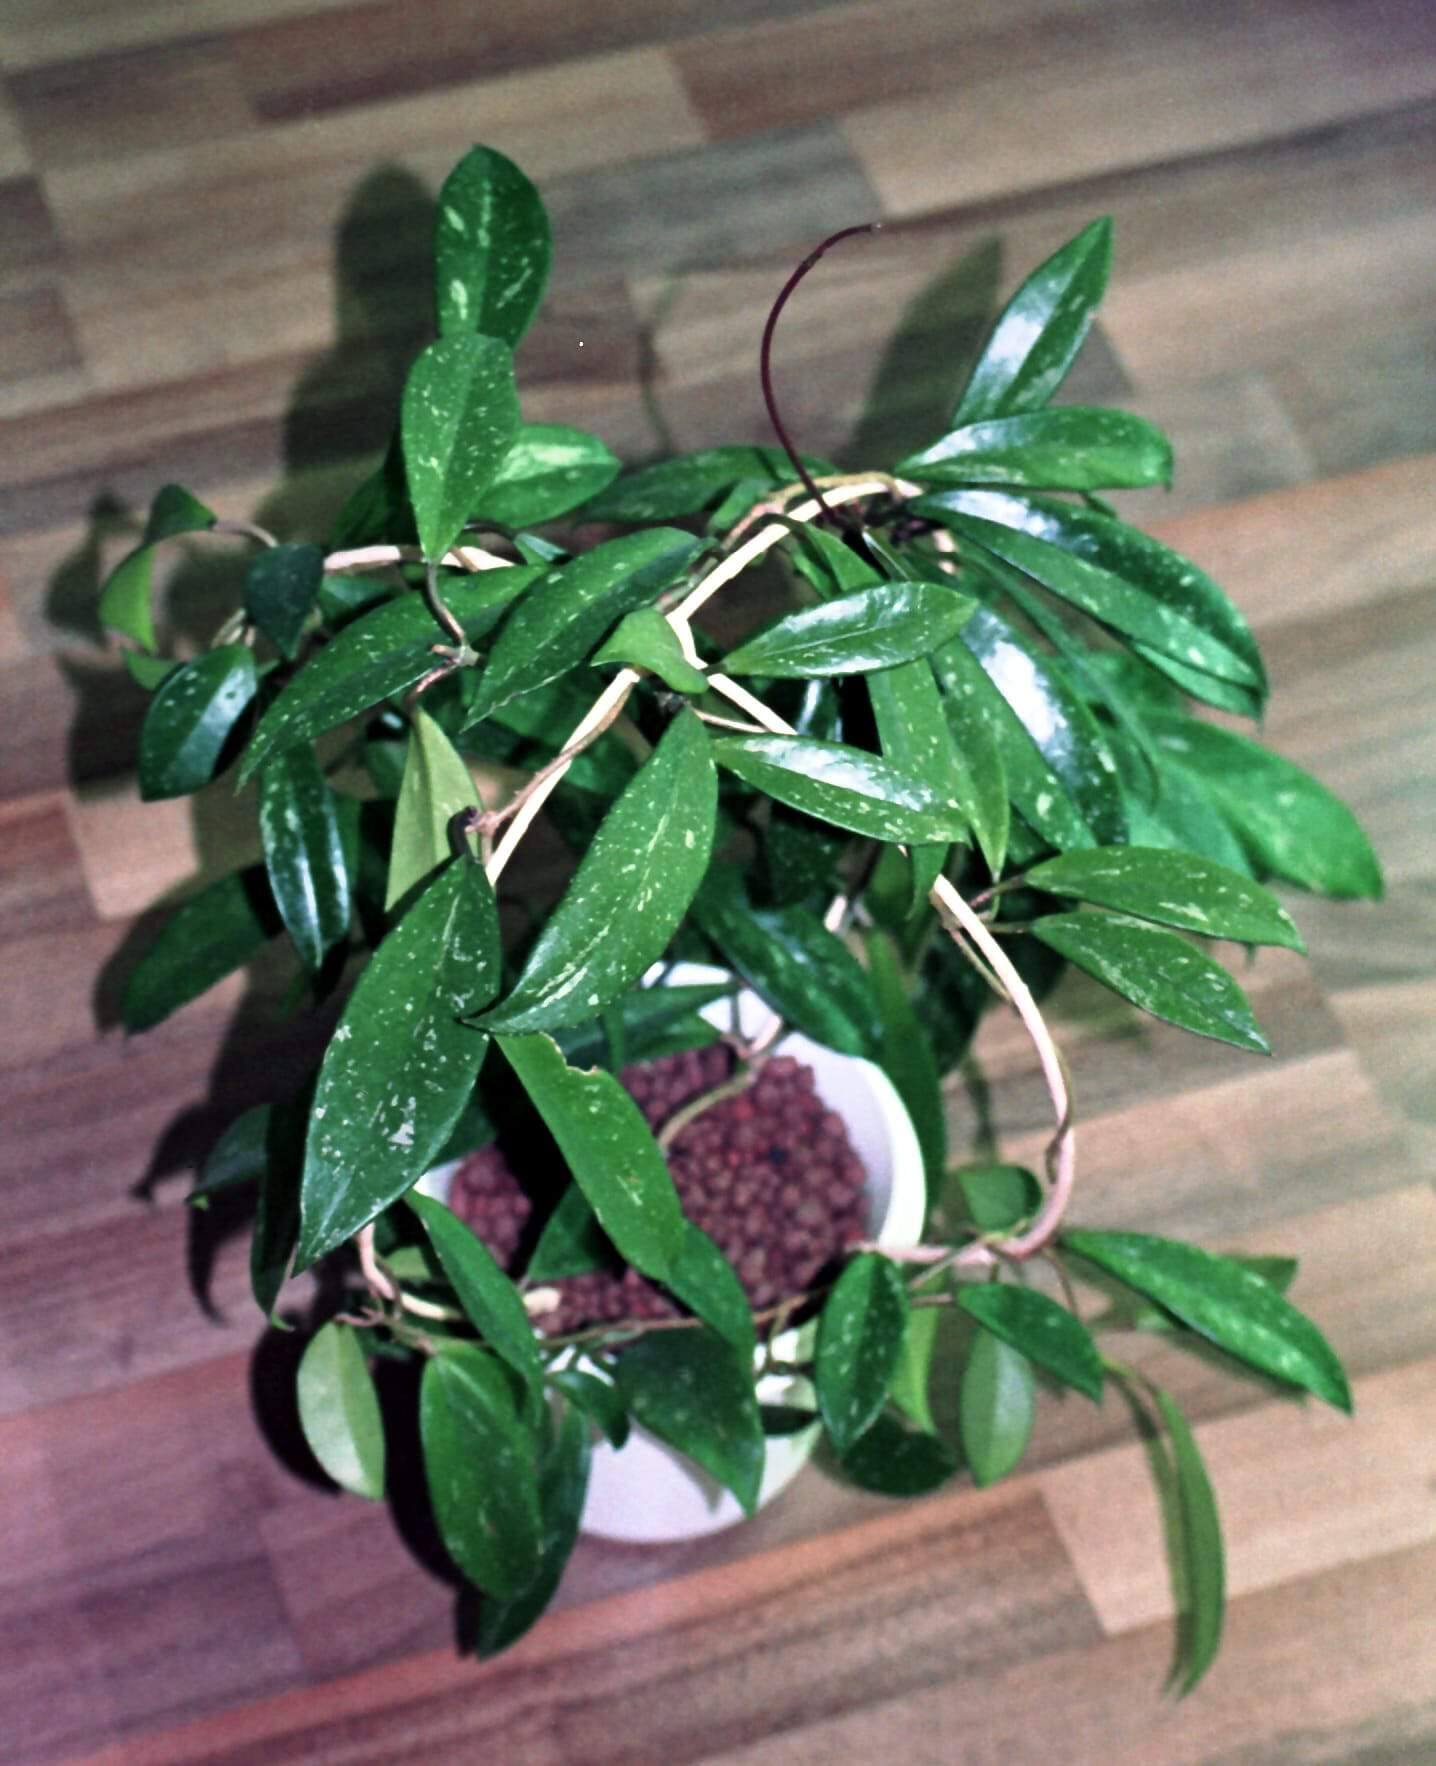 a growing Hoya pubicalyx shrub using hydroponic gardening system